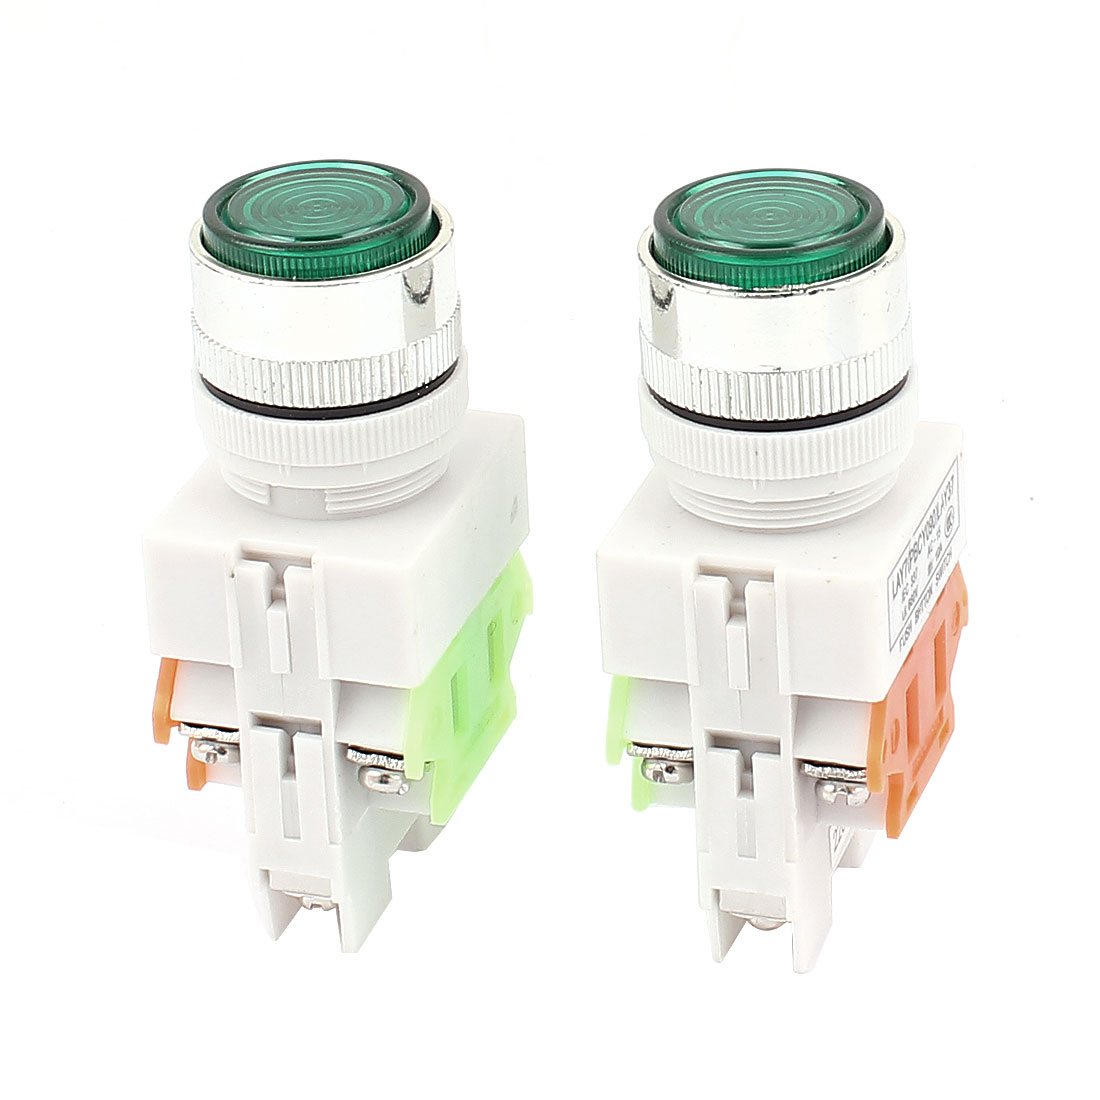 AC 660V 10A NO NC 4-Pin Momentary Green Push Button Switch 5PCS